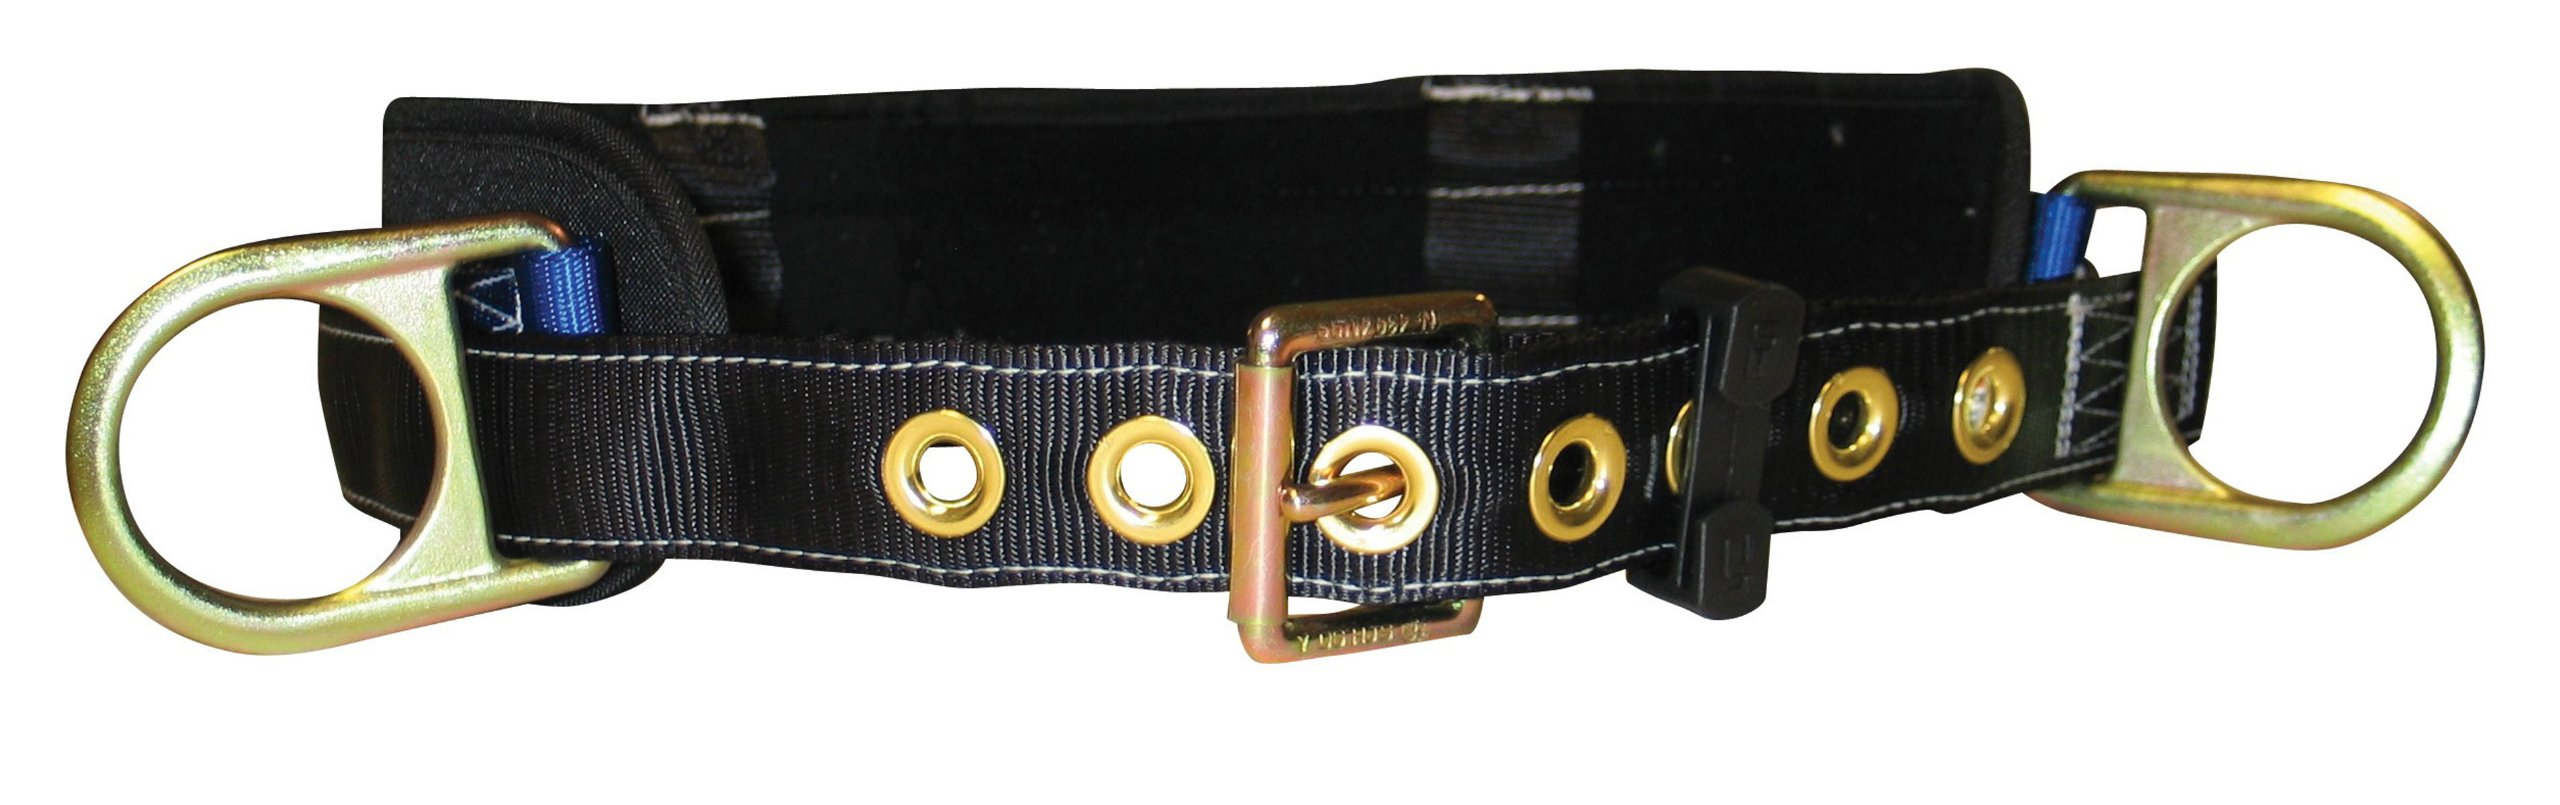 FallTech 7055L Position Belt Deluxe 2 D-Rings with 4-Inch Pad, Large by FallTech